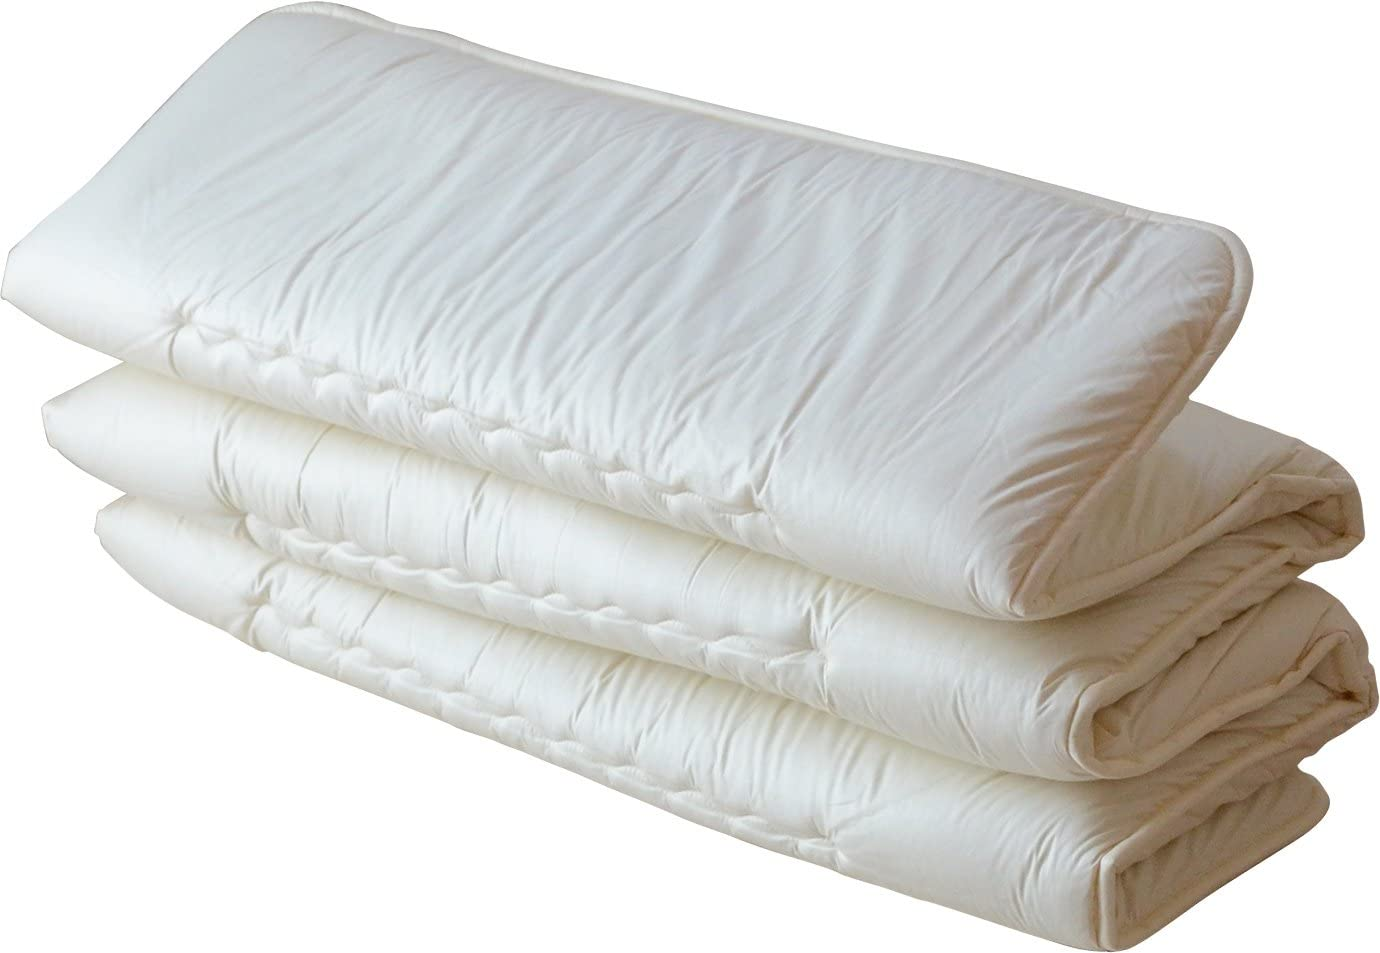 EMOOR Japanese Traditional Mattress Futon 6-fold, Twin Size. Made in Japan